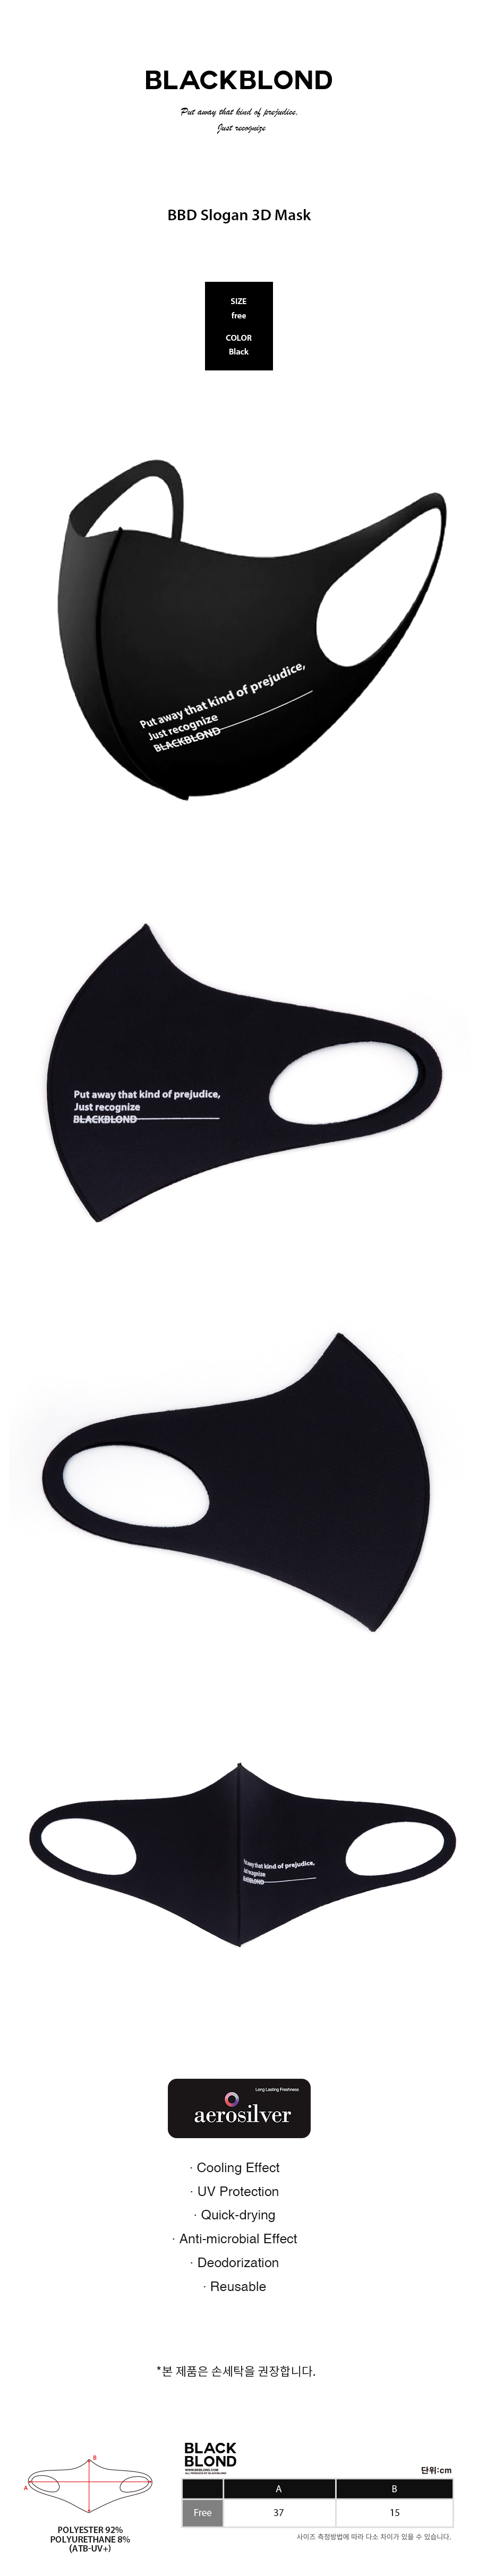 BBD-Slogan-3D-Mask-%28Black%29.jpg